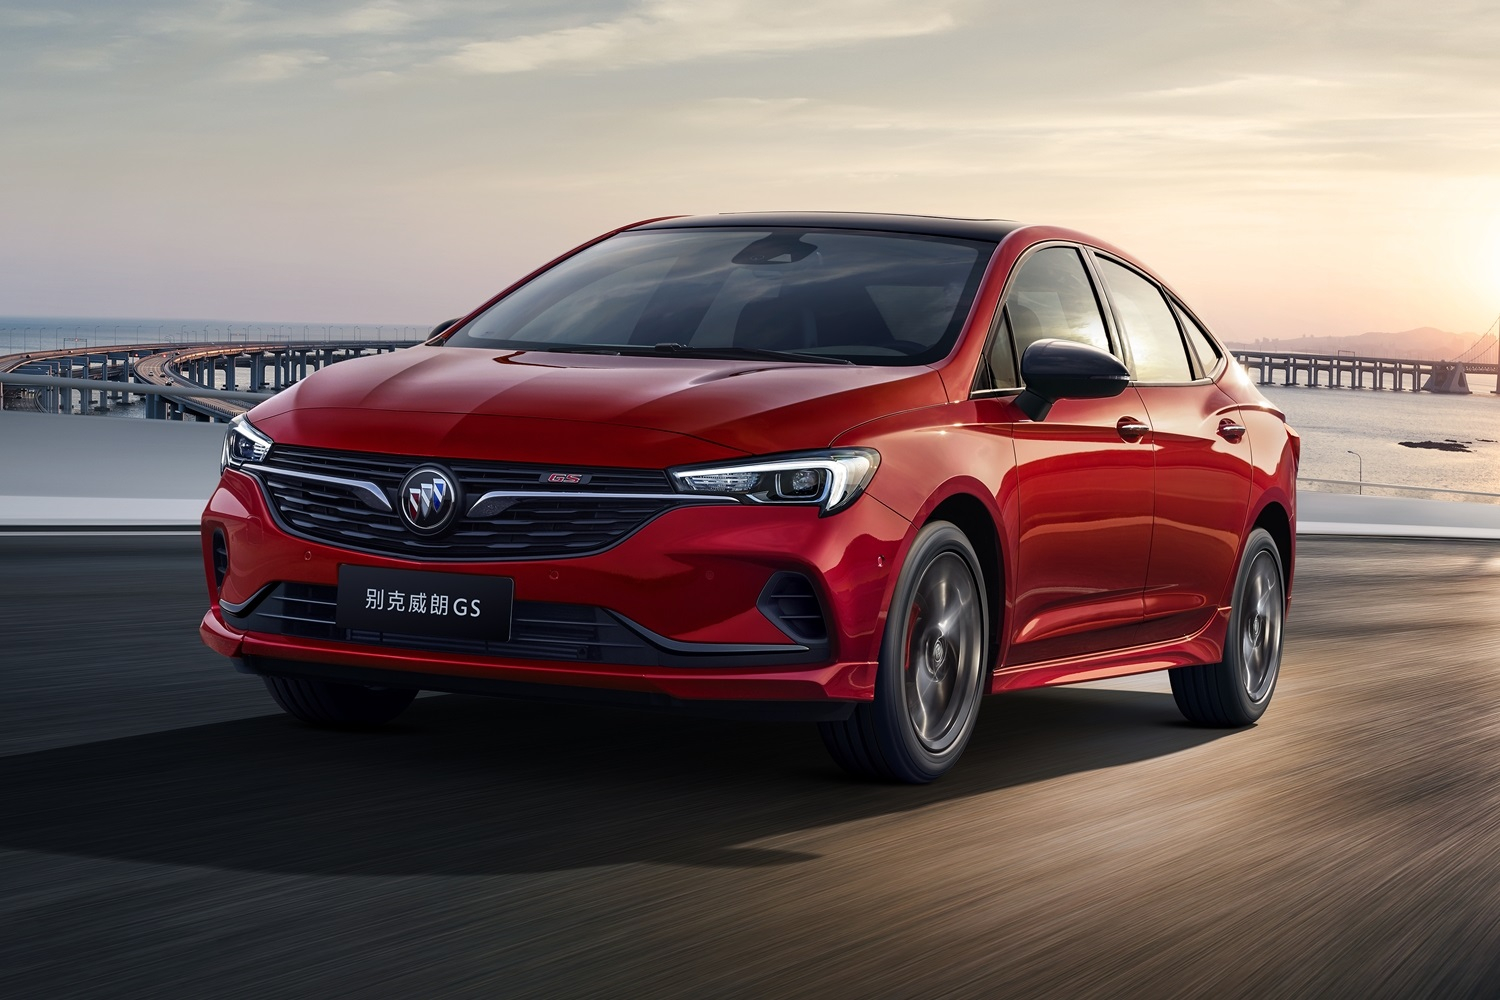 New 2021 Buick Verano Gs Launches In China | Gm Authority 2021 Buick Verano Length, Images, Manual Transmission